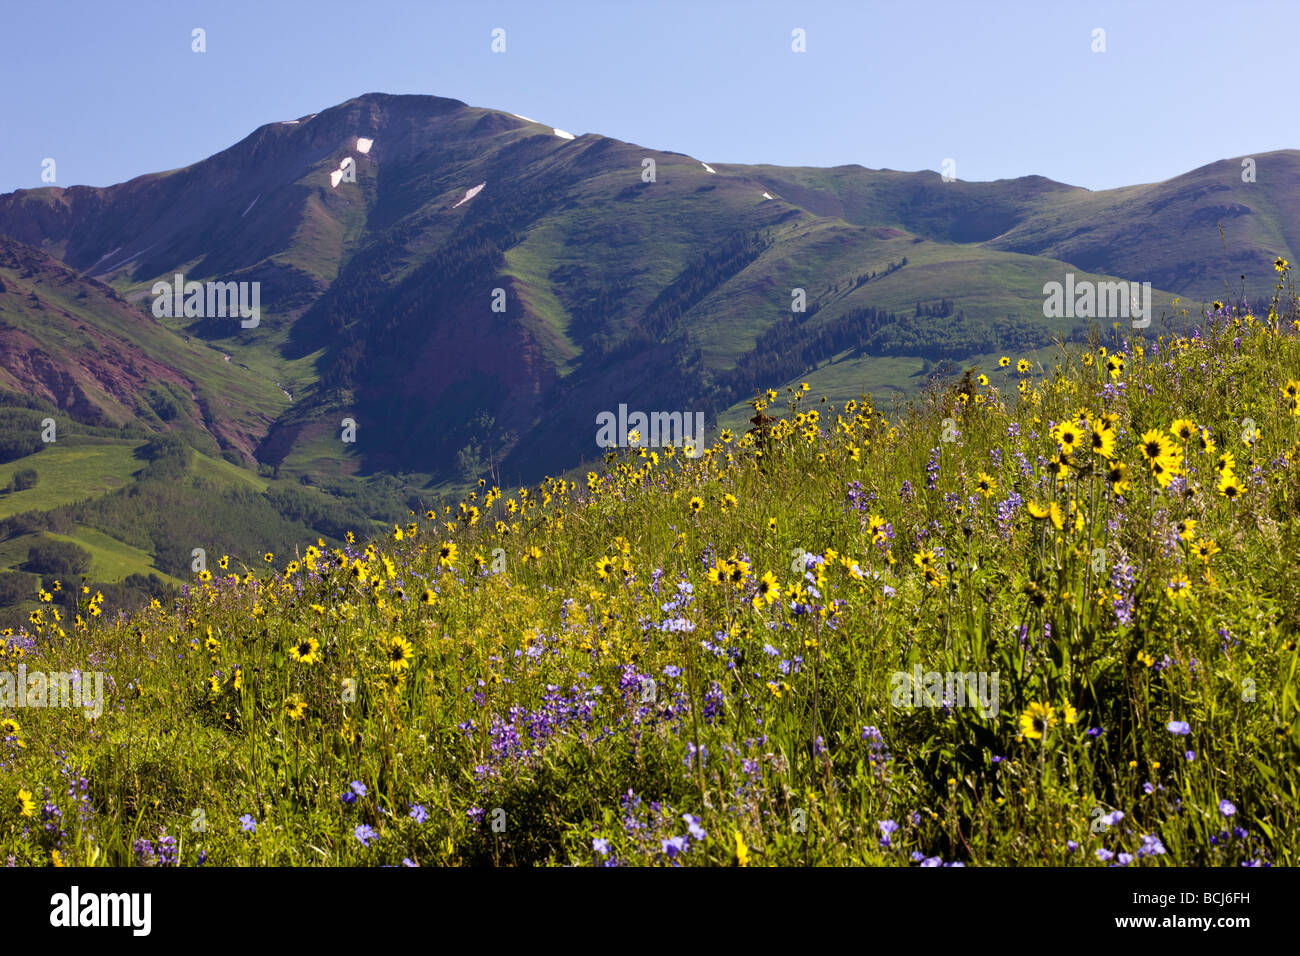 Wildflowers including Blue Flax Linum lewisii Linaceae Lupine and Aspen Sunflowers near Mount Crested Butte Colorado Stock Photo